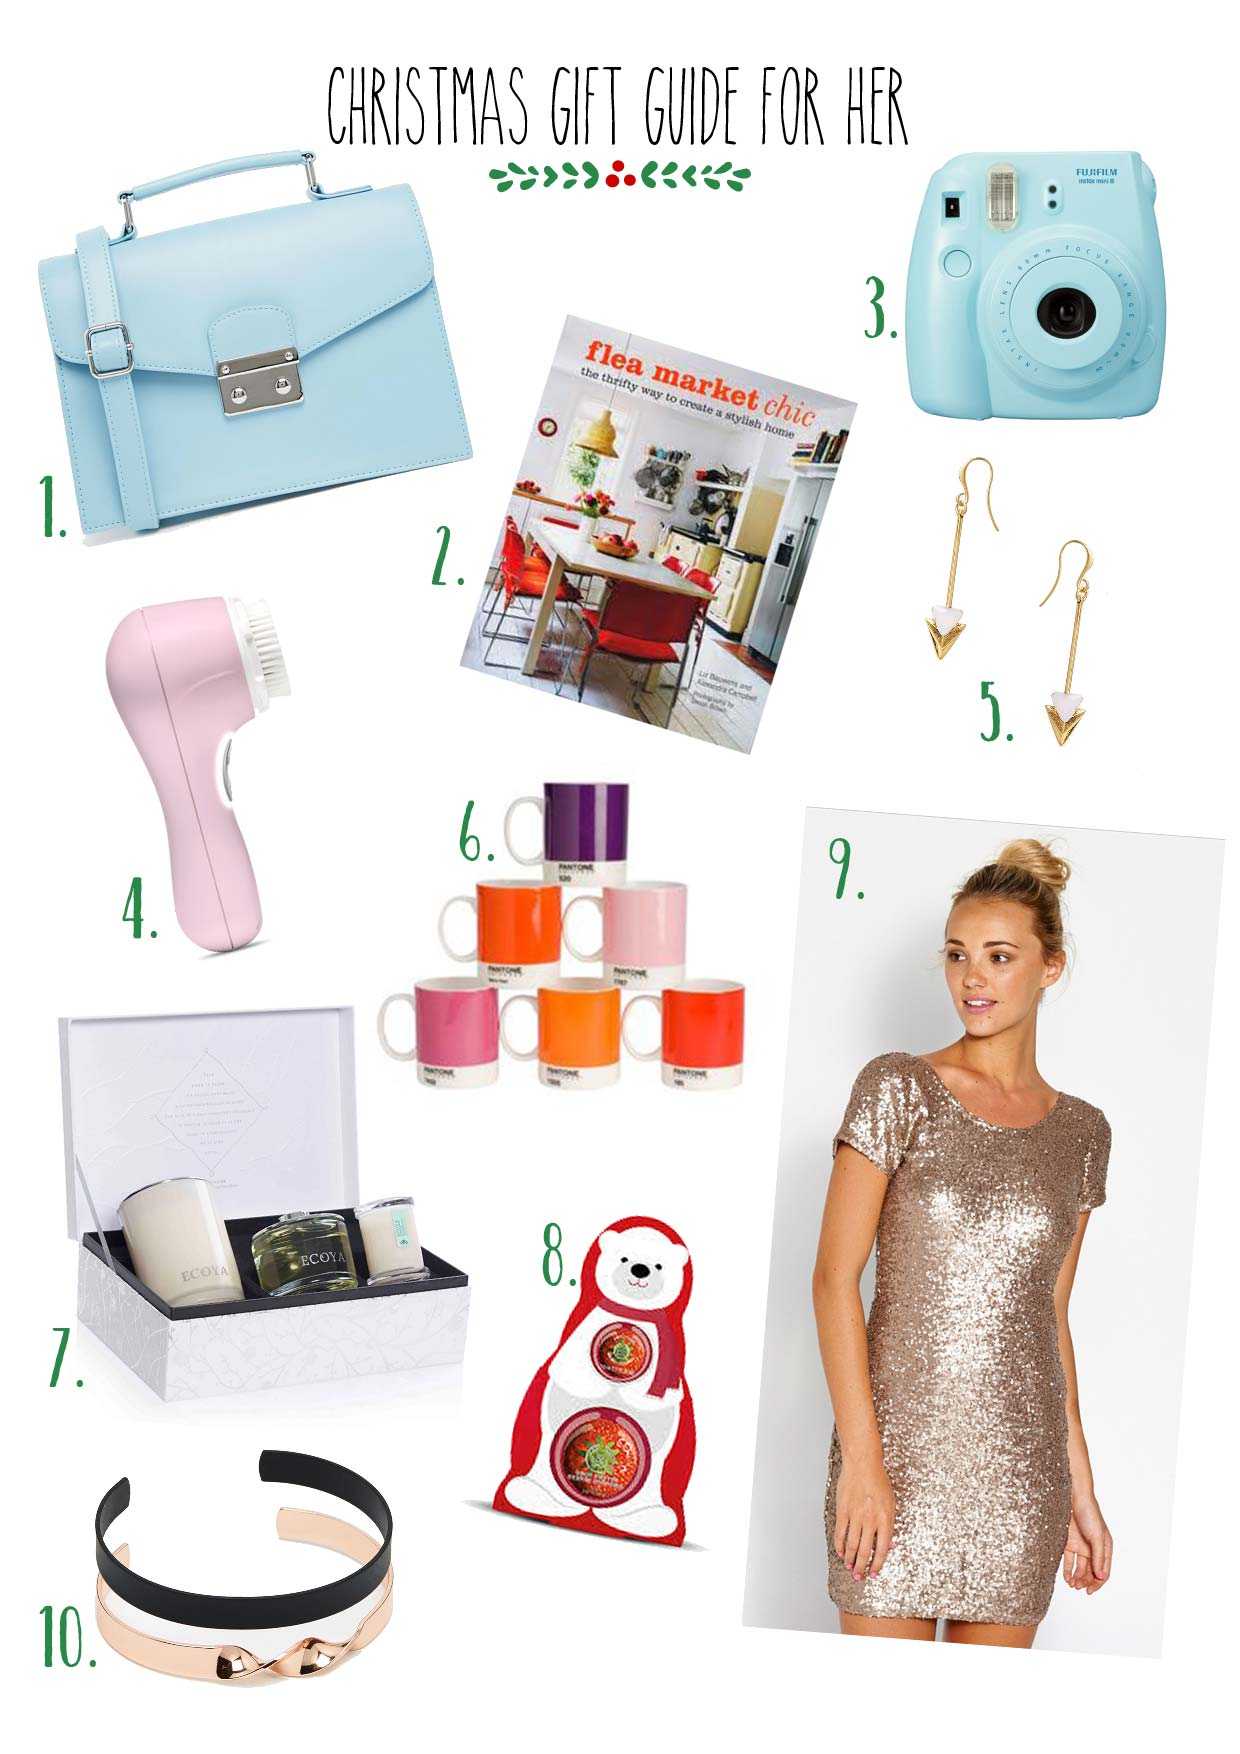 gift guide 4 her-01